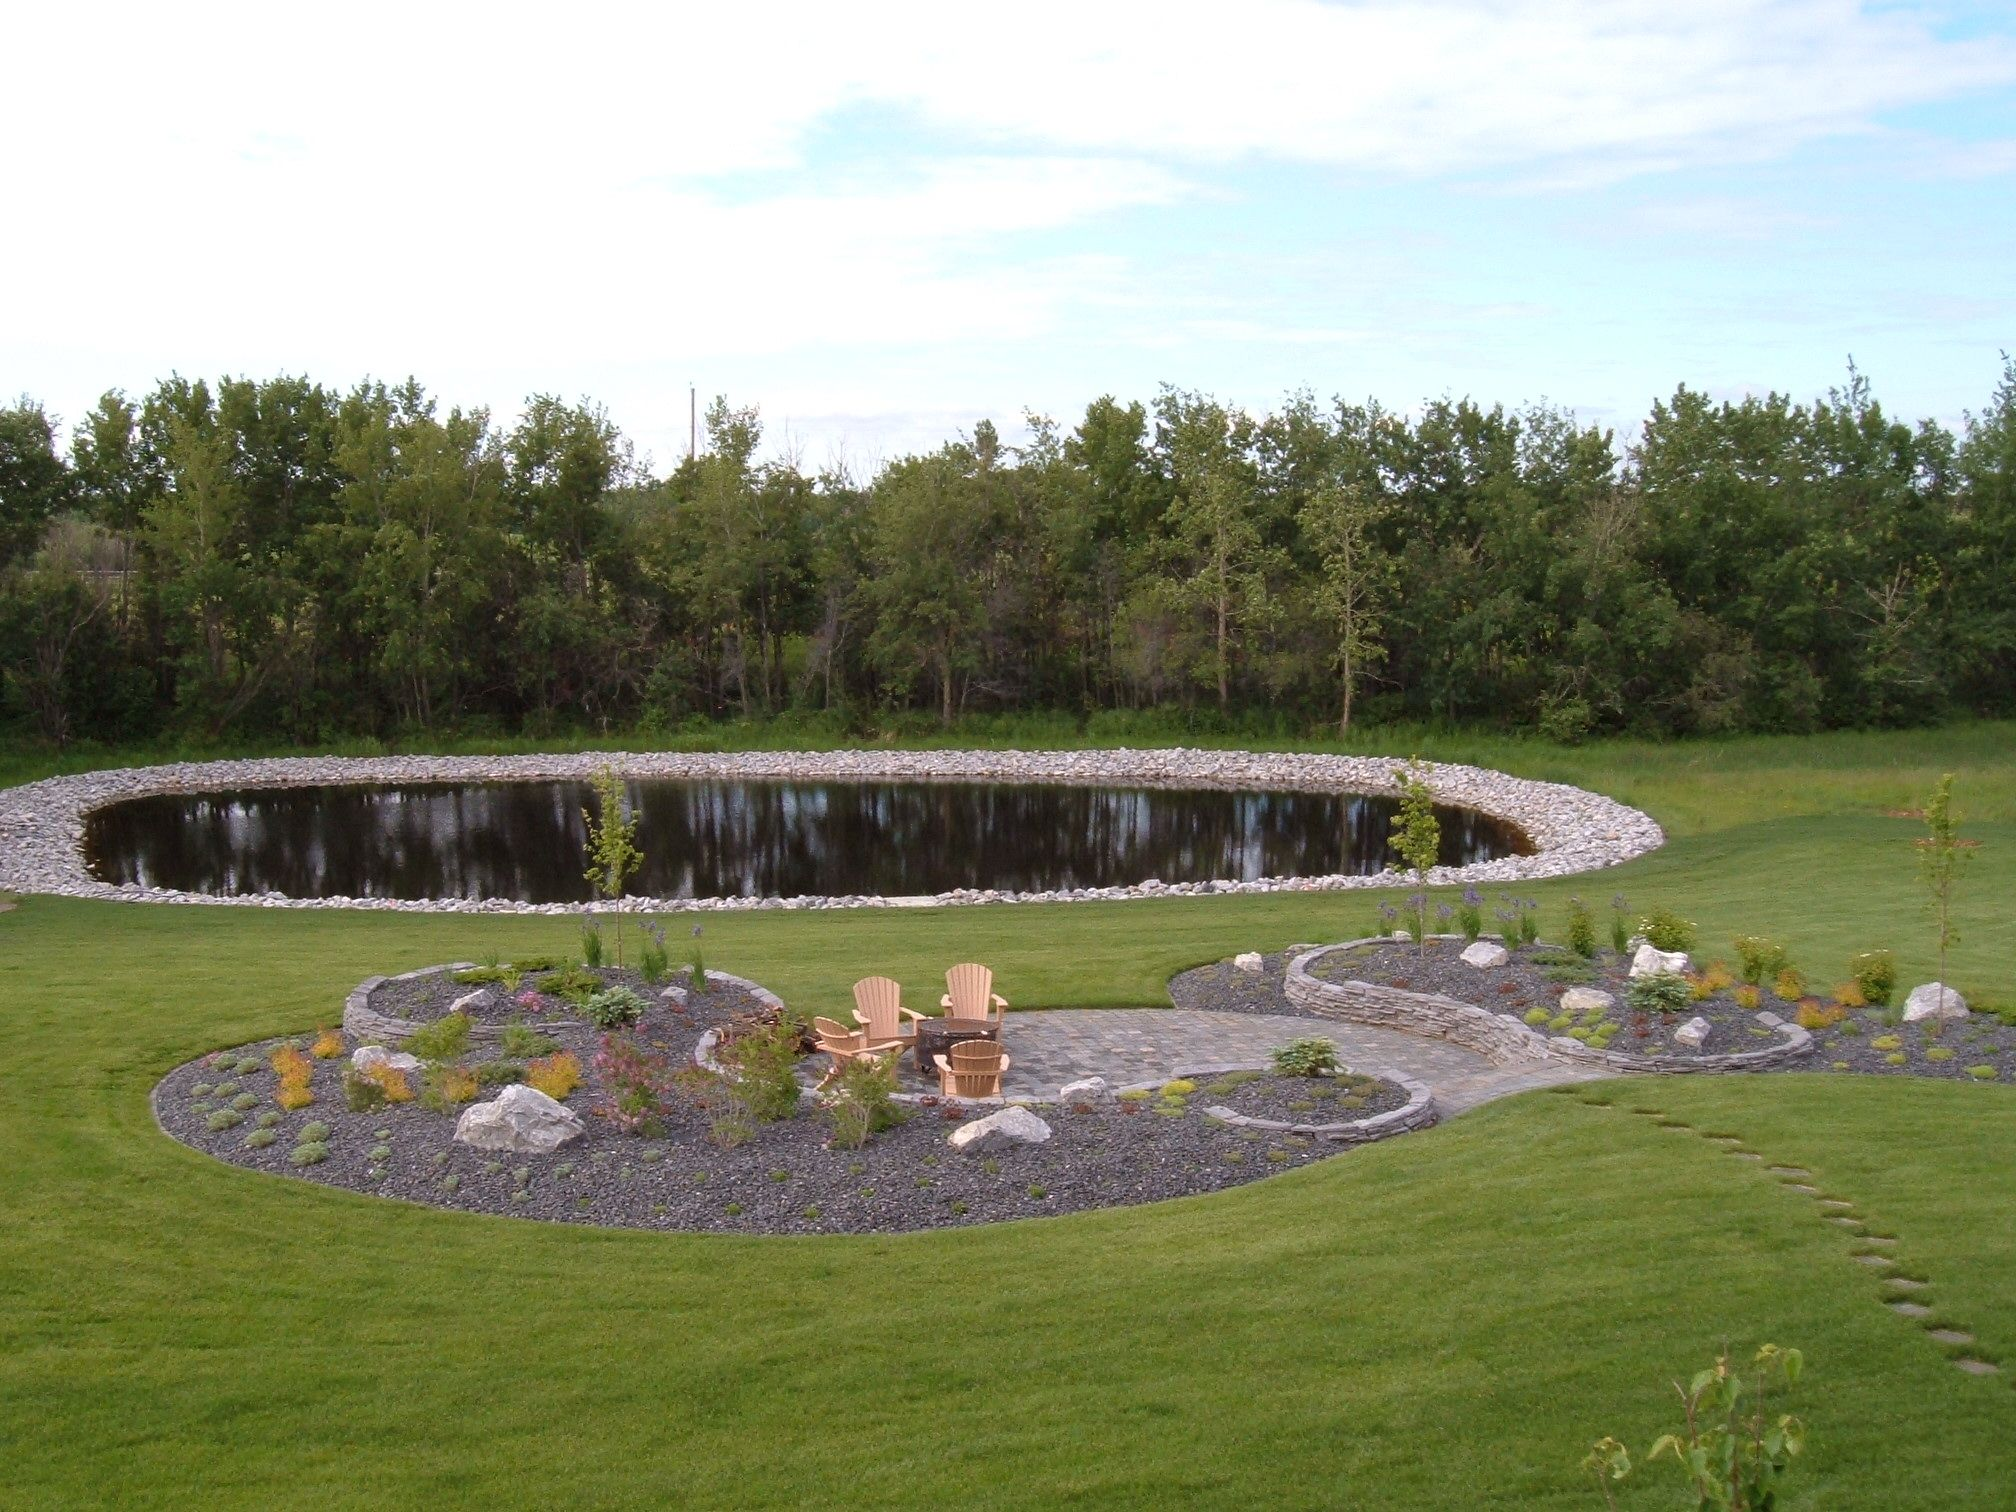 Patio in a hill over looking a pond outlined with for Rock ponds designs